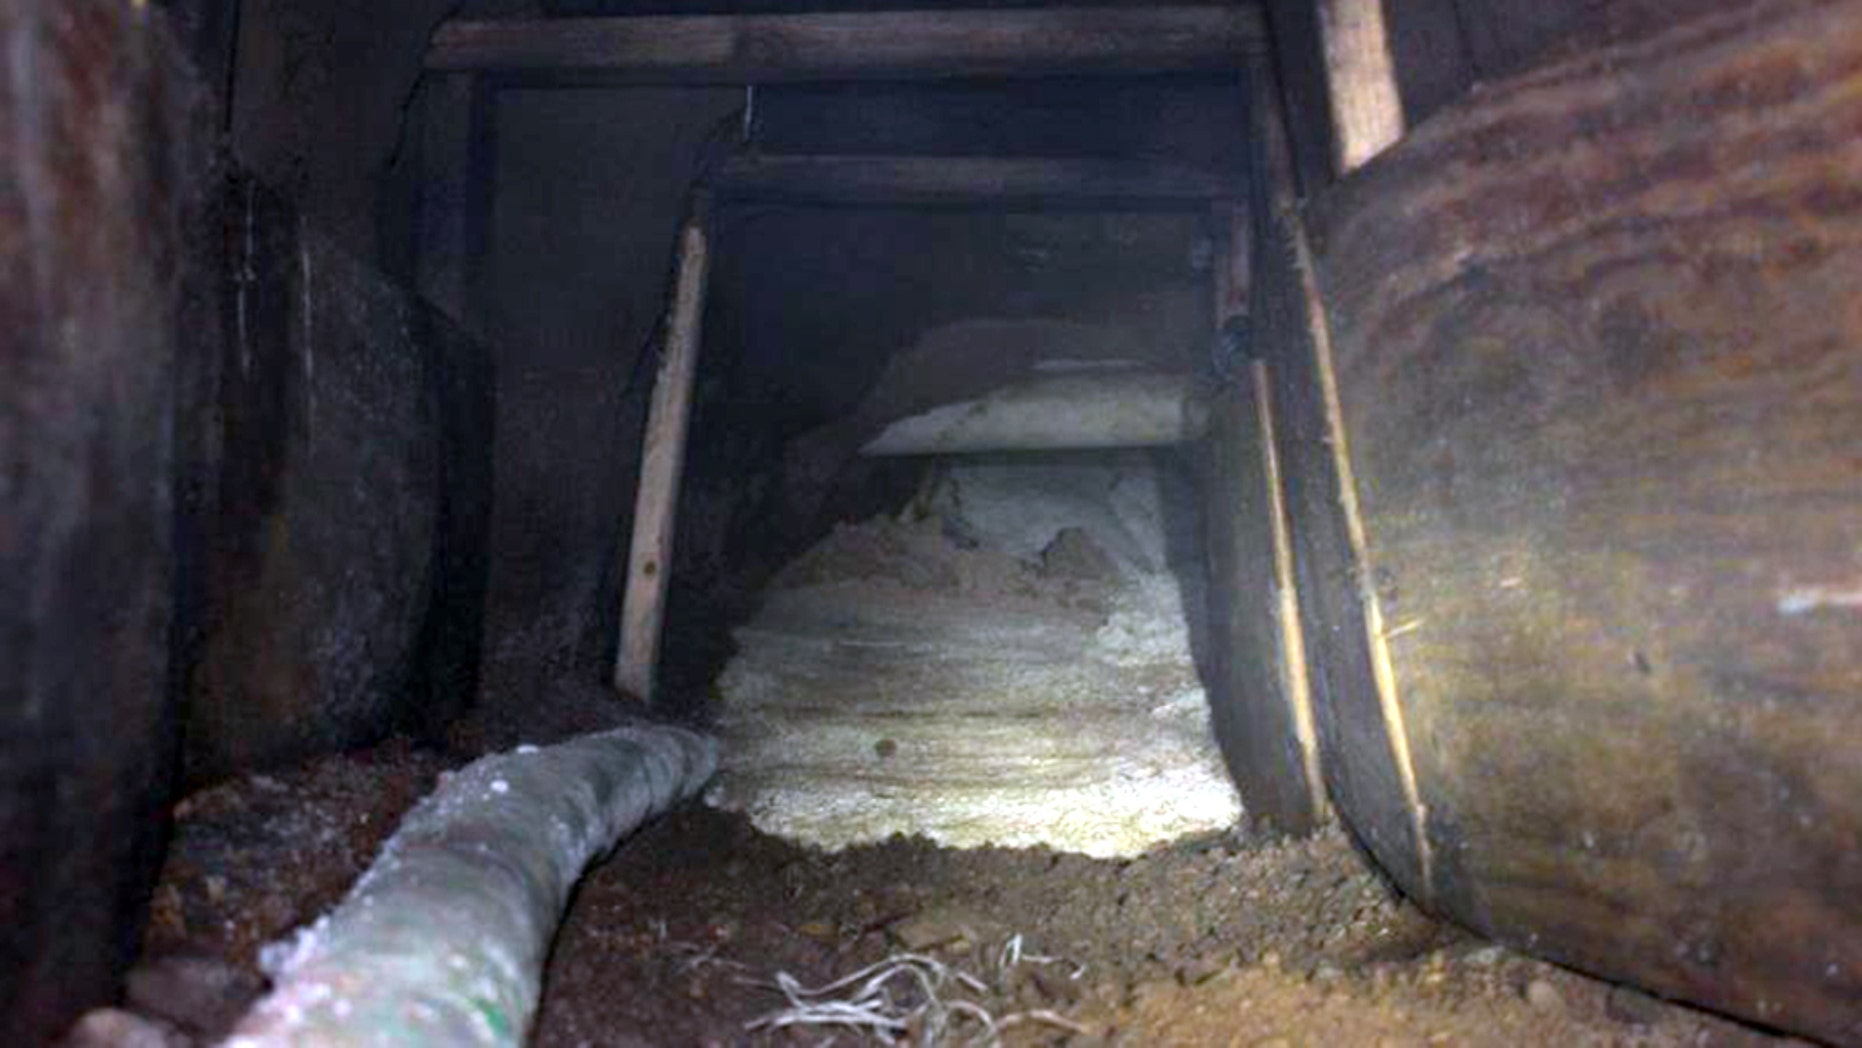 An illegal, unfinished cross-border tunnel running into the U.S.was uncovered by authorities Monday, Customs and Border Protection announced.